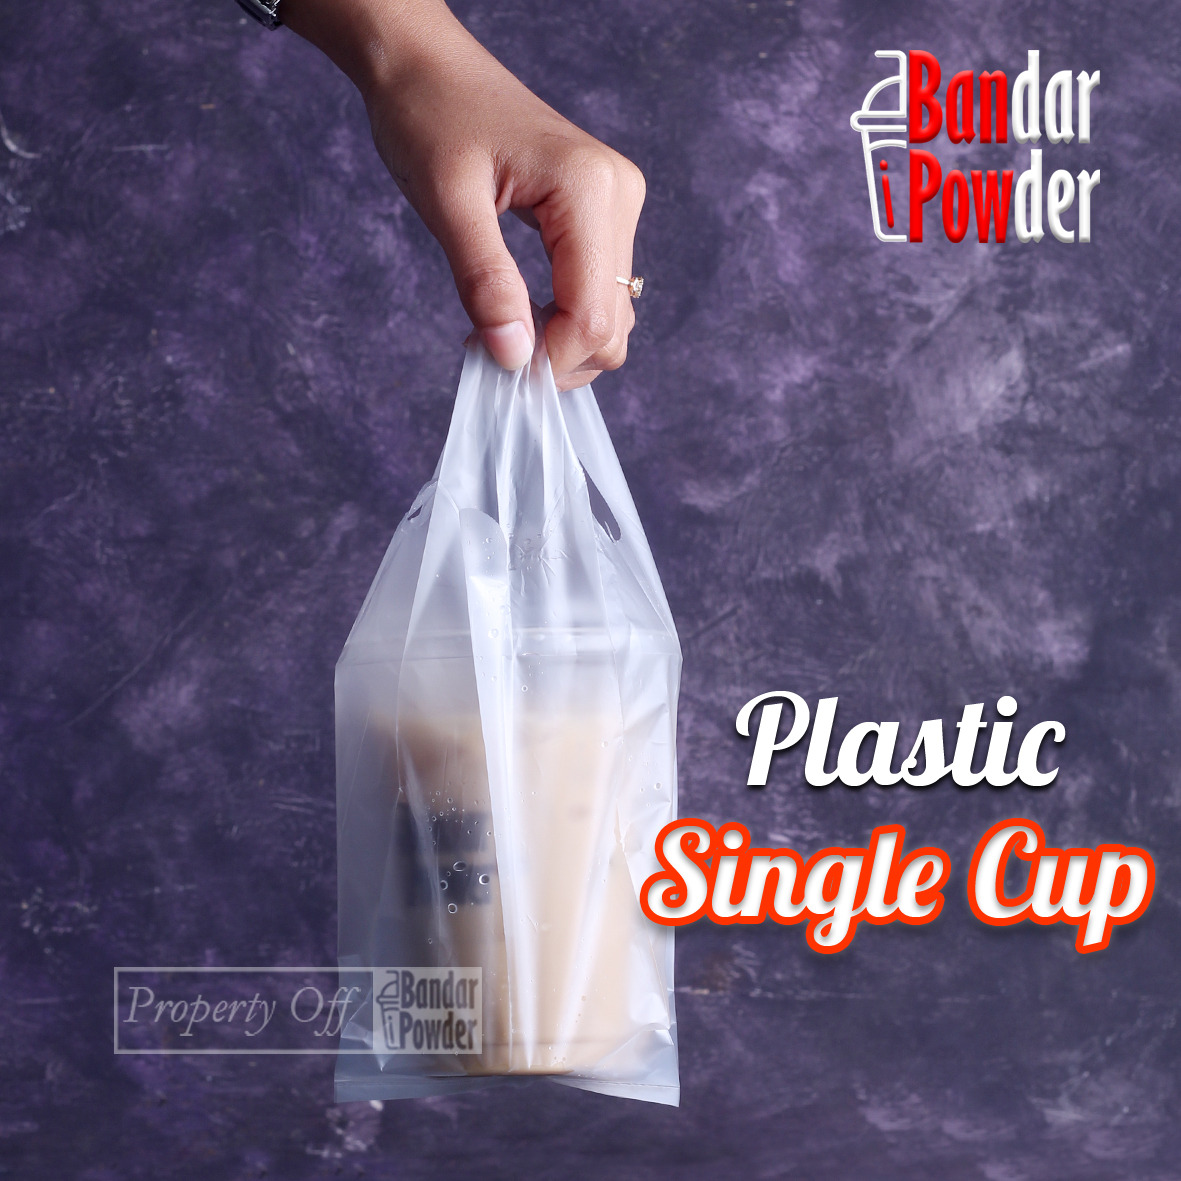 Kantong Plastik Single Cup Kresek Take Away Untuk 1 Pcs Gelas